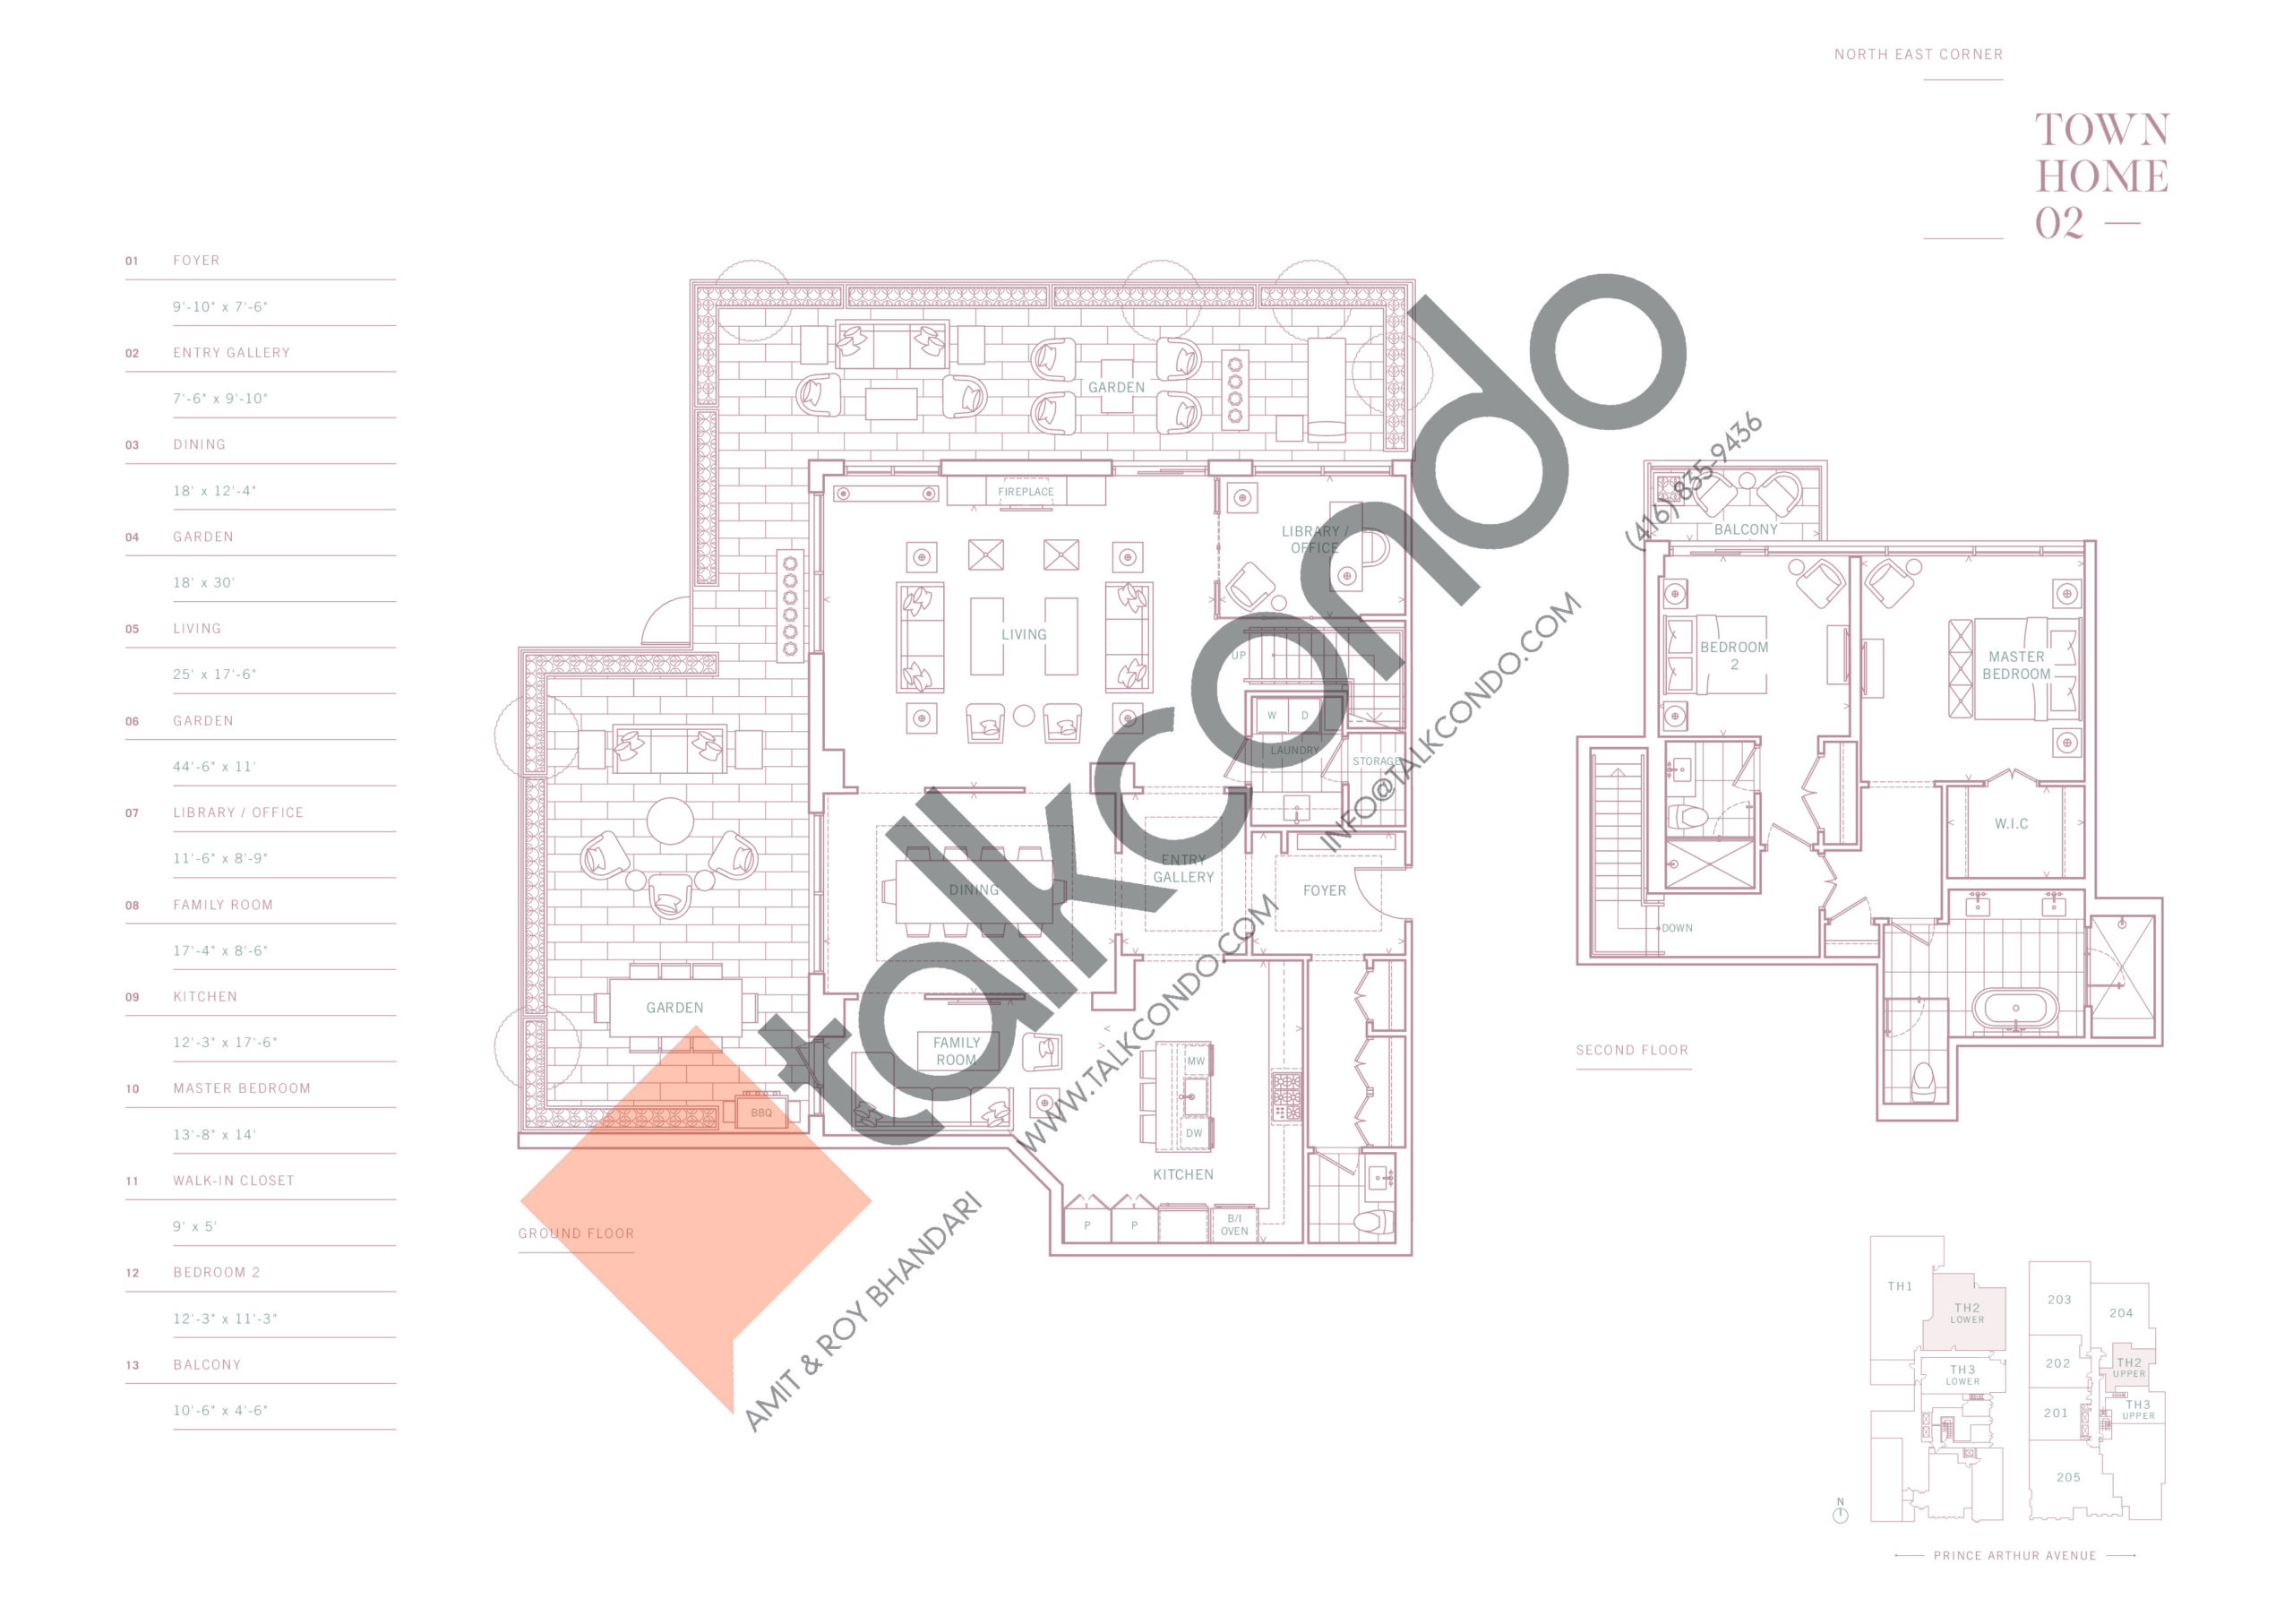 Townhome 02 Floor Plan at 10 Prince Arthur Condos - 2638 sq.ft